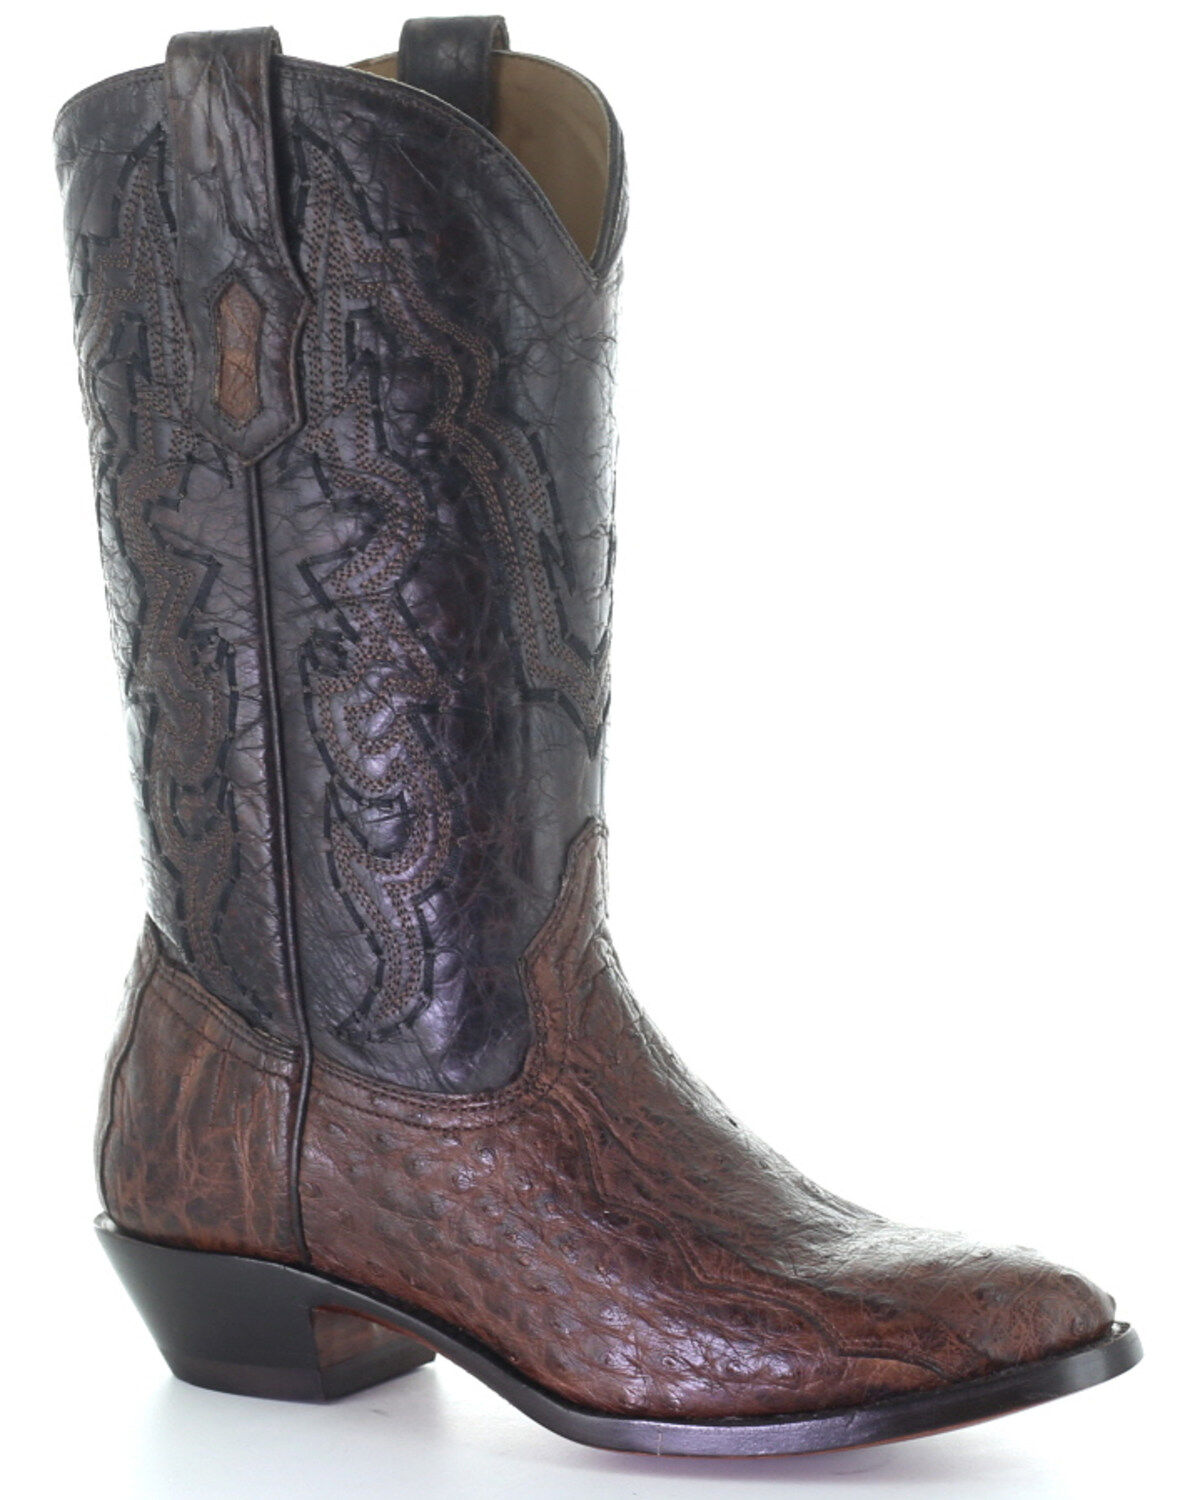 Grey 10 D CORRAL Mens Round Toe Embroidery Cowboy Boot